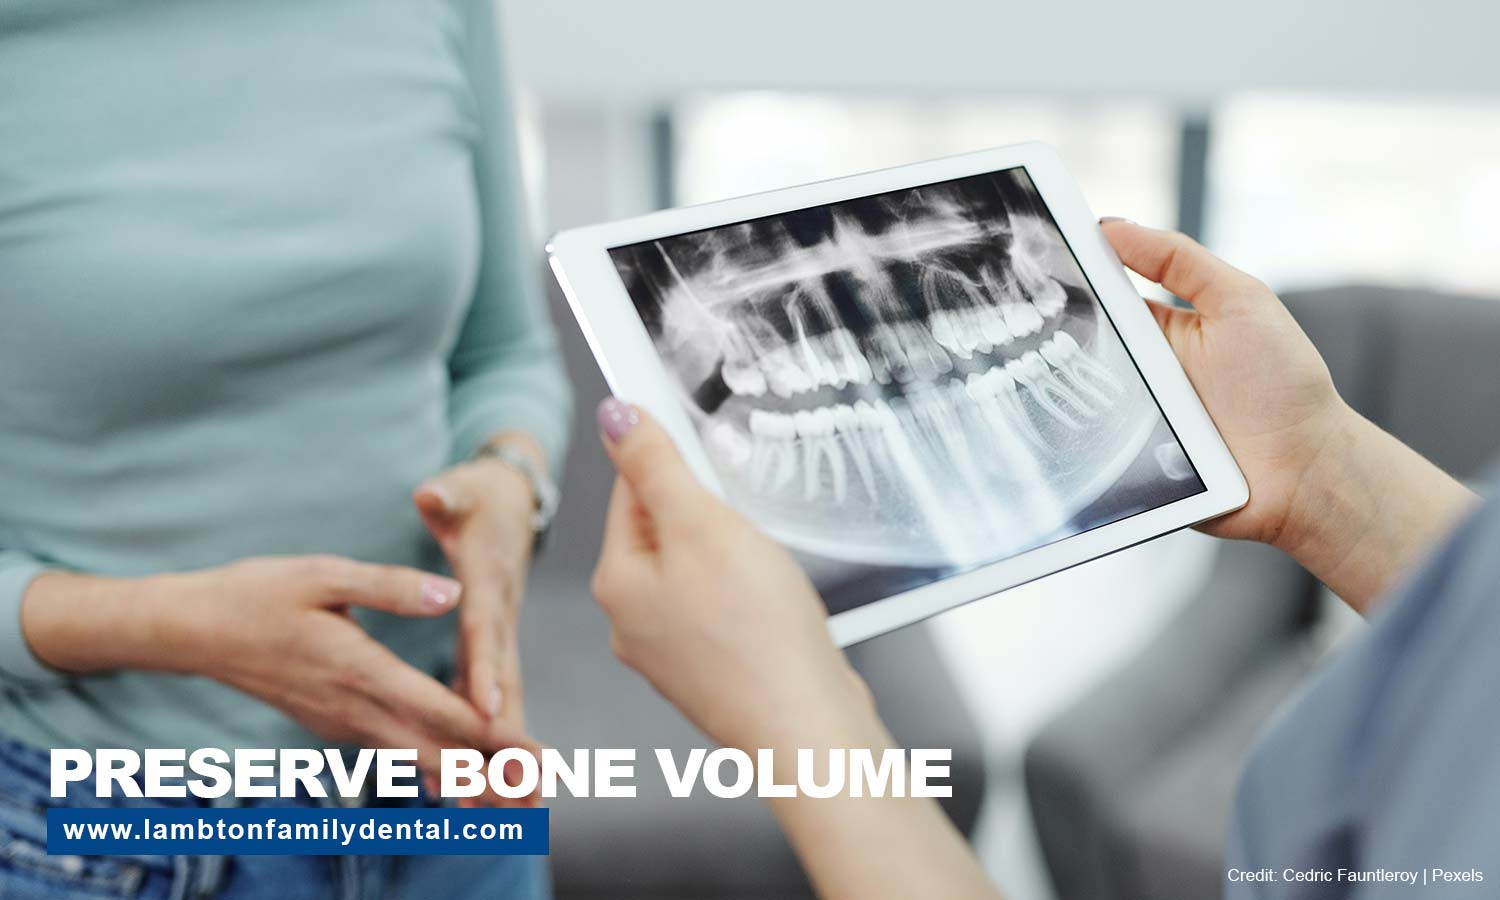 Preserve bone volume